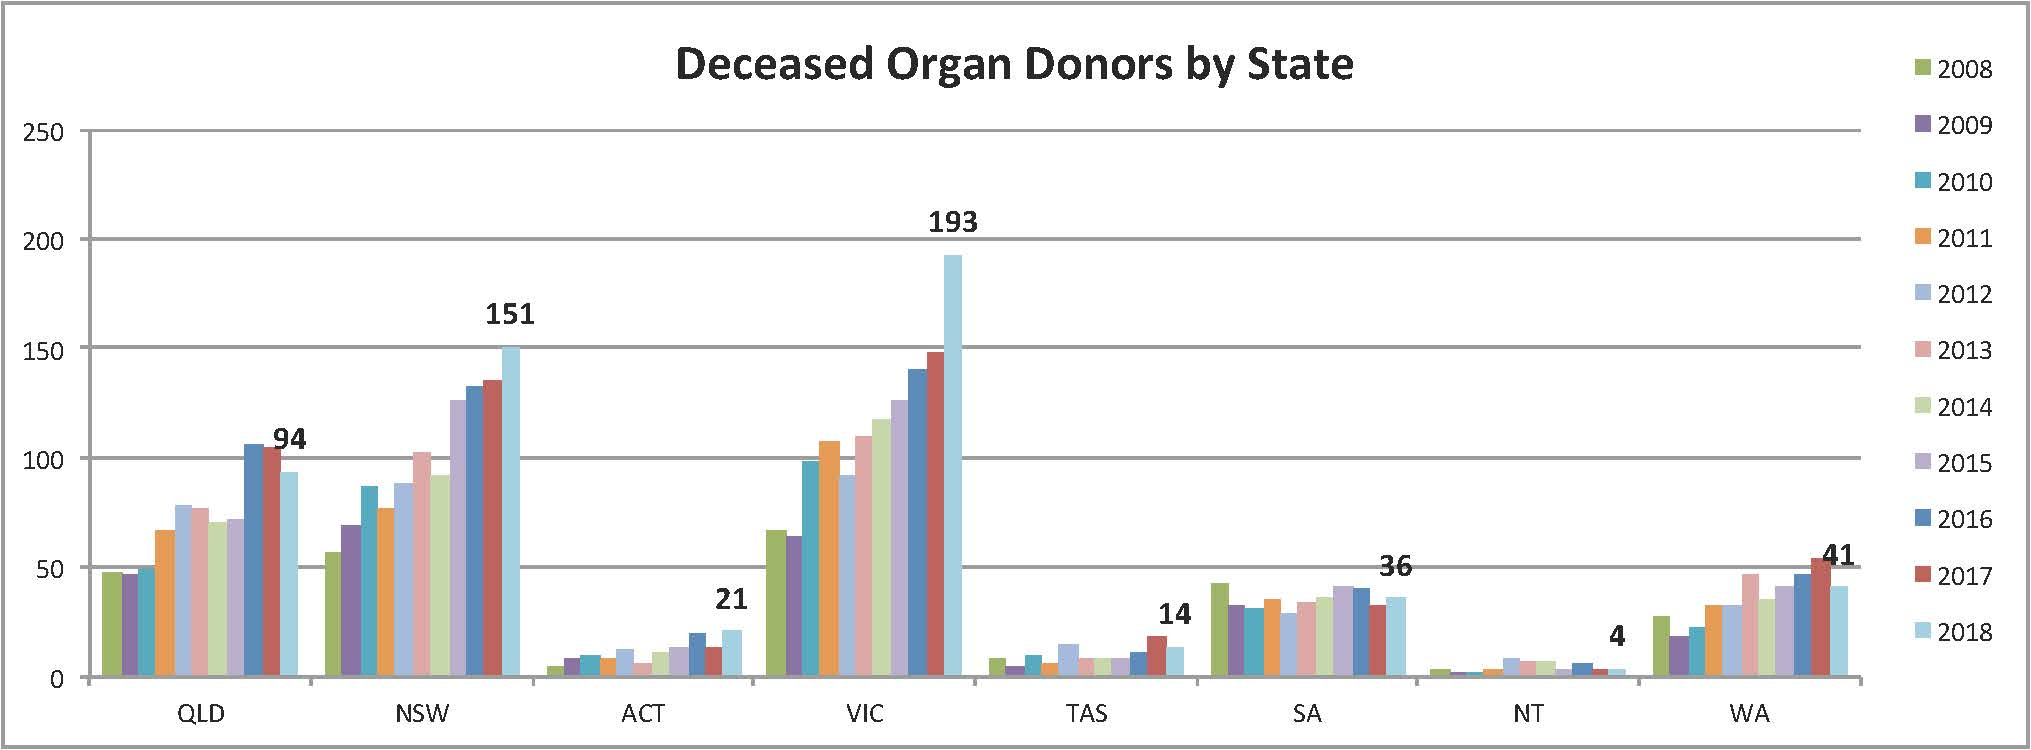 graph showing the number of deceased organ donors by state